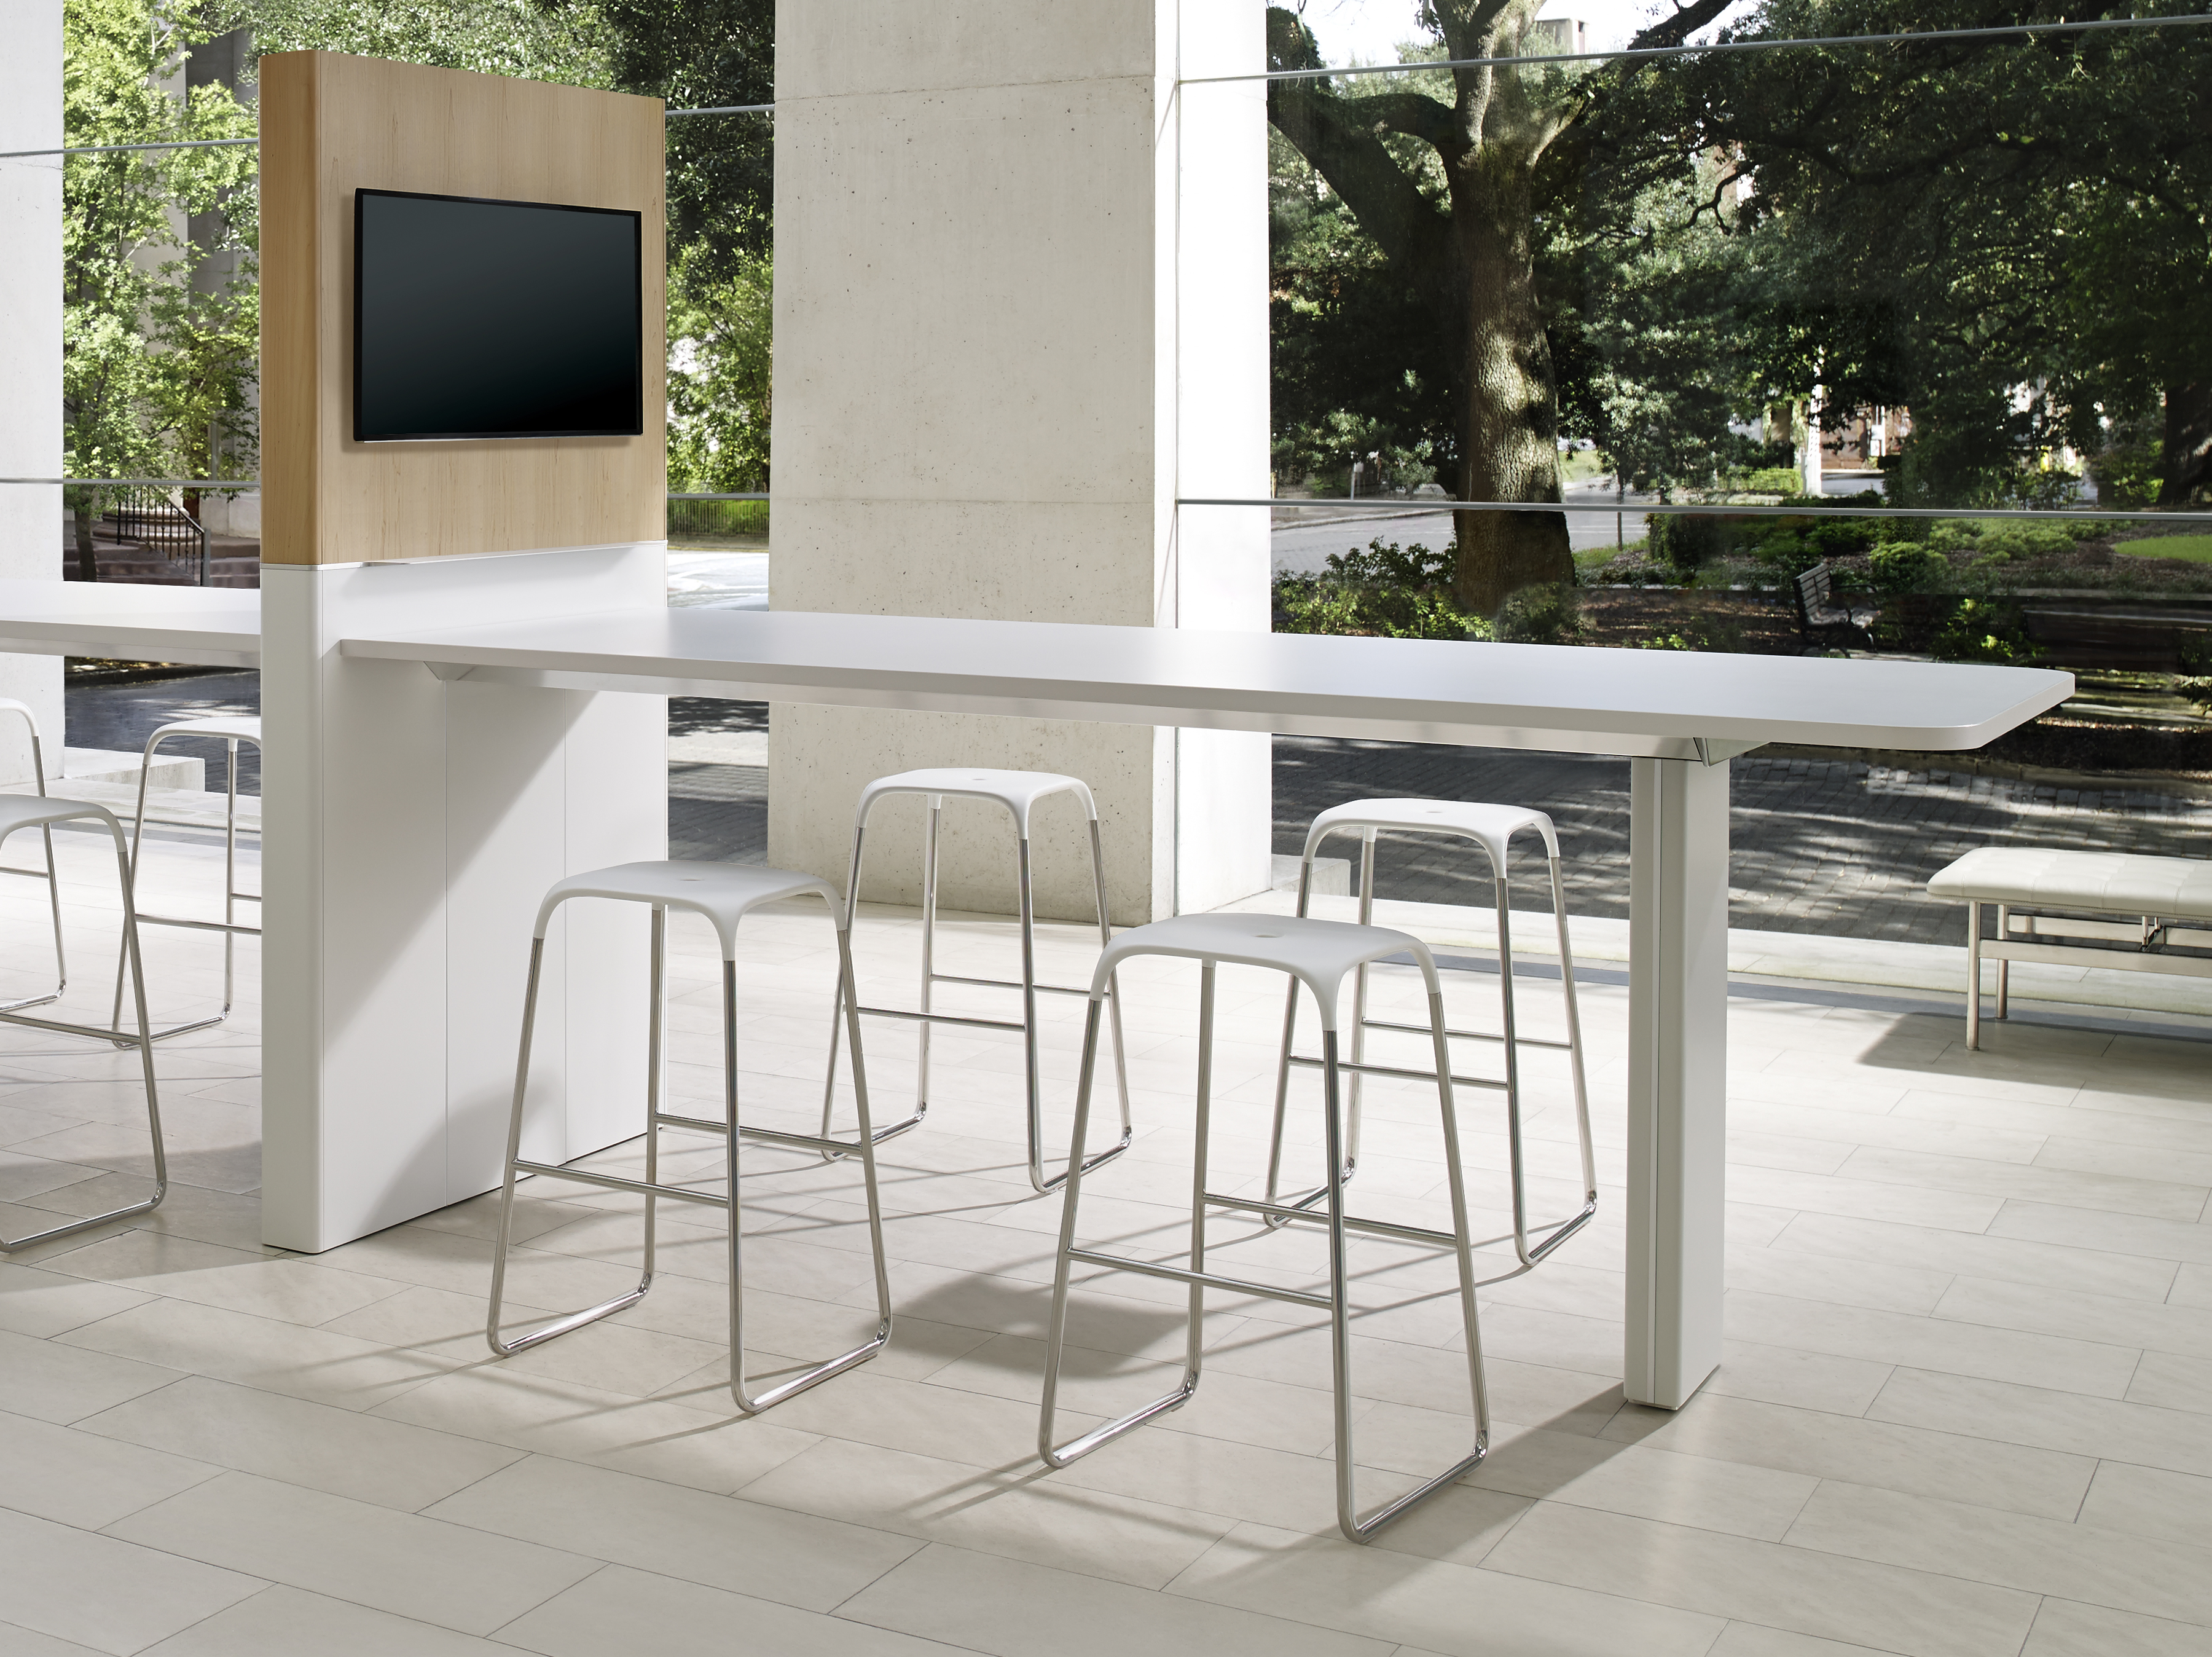 Impress Board Members With These Five Modern Conference Room Designs - Bar height conference table